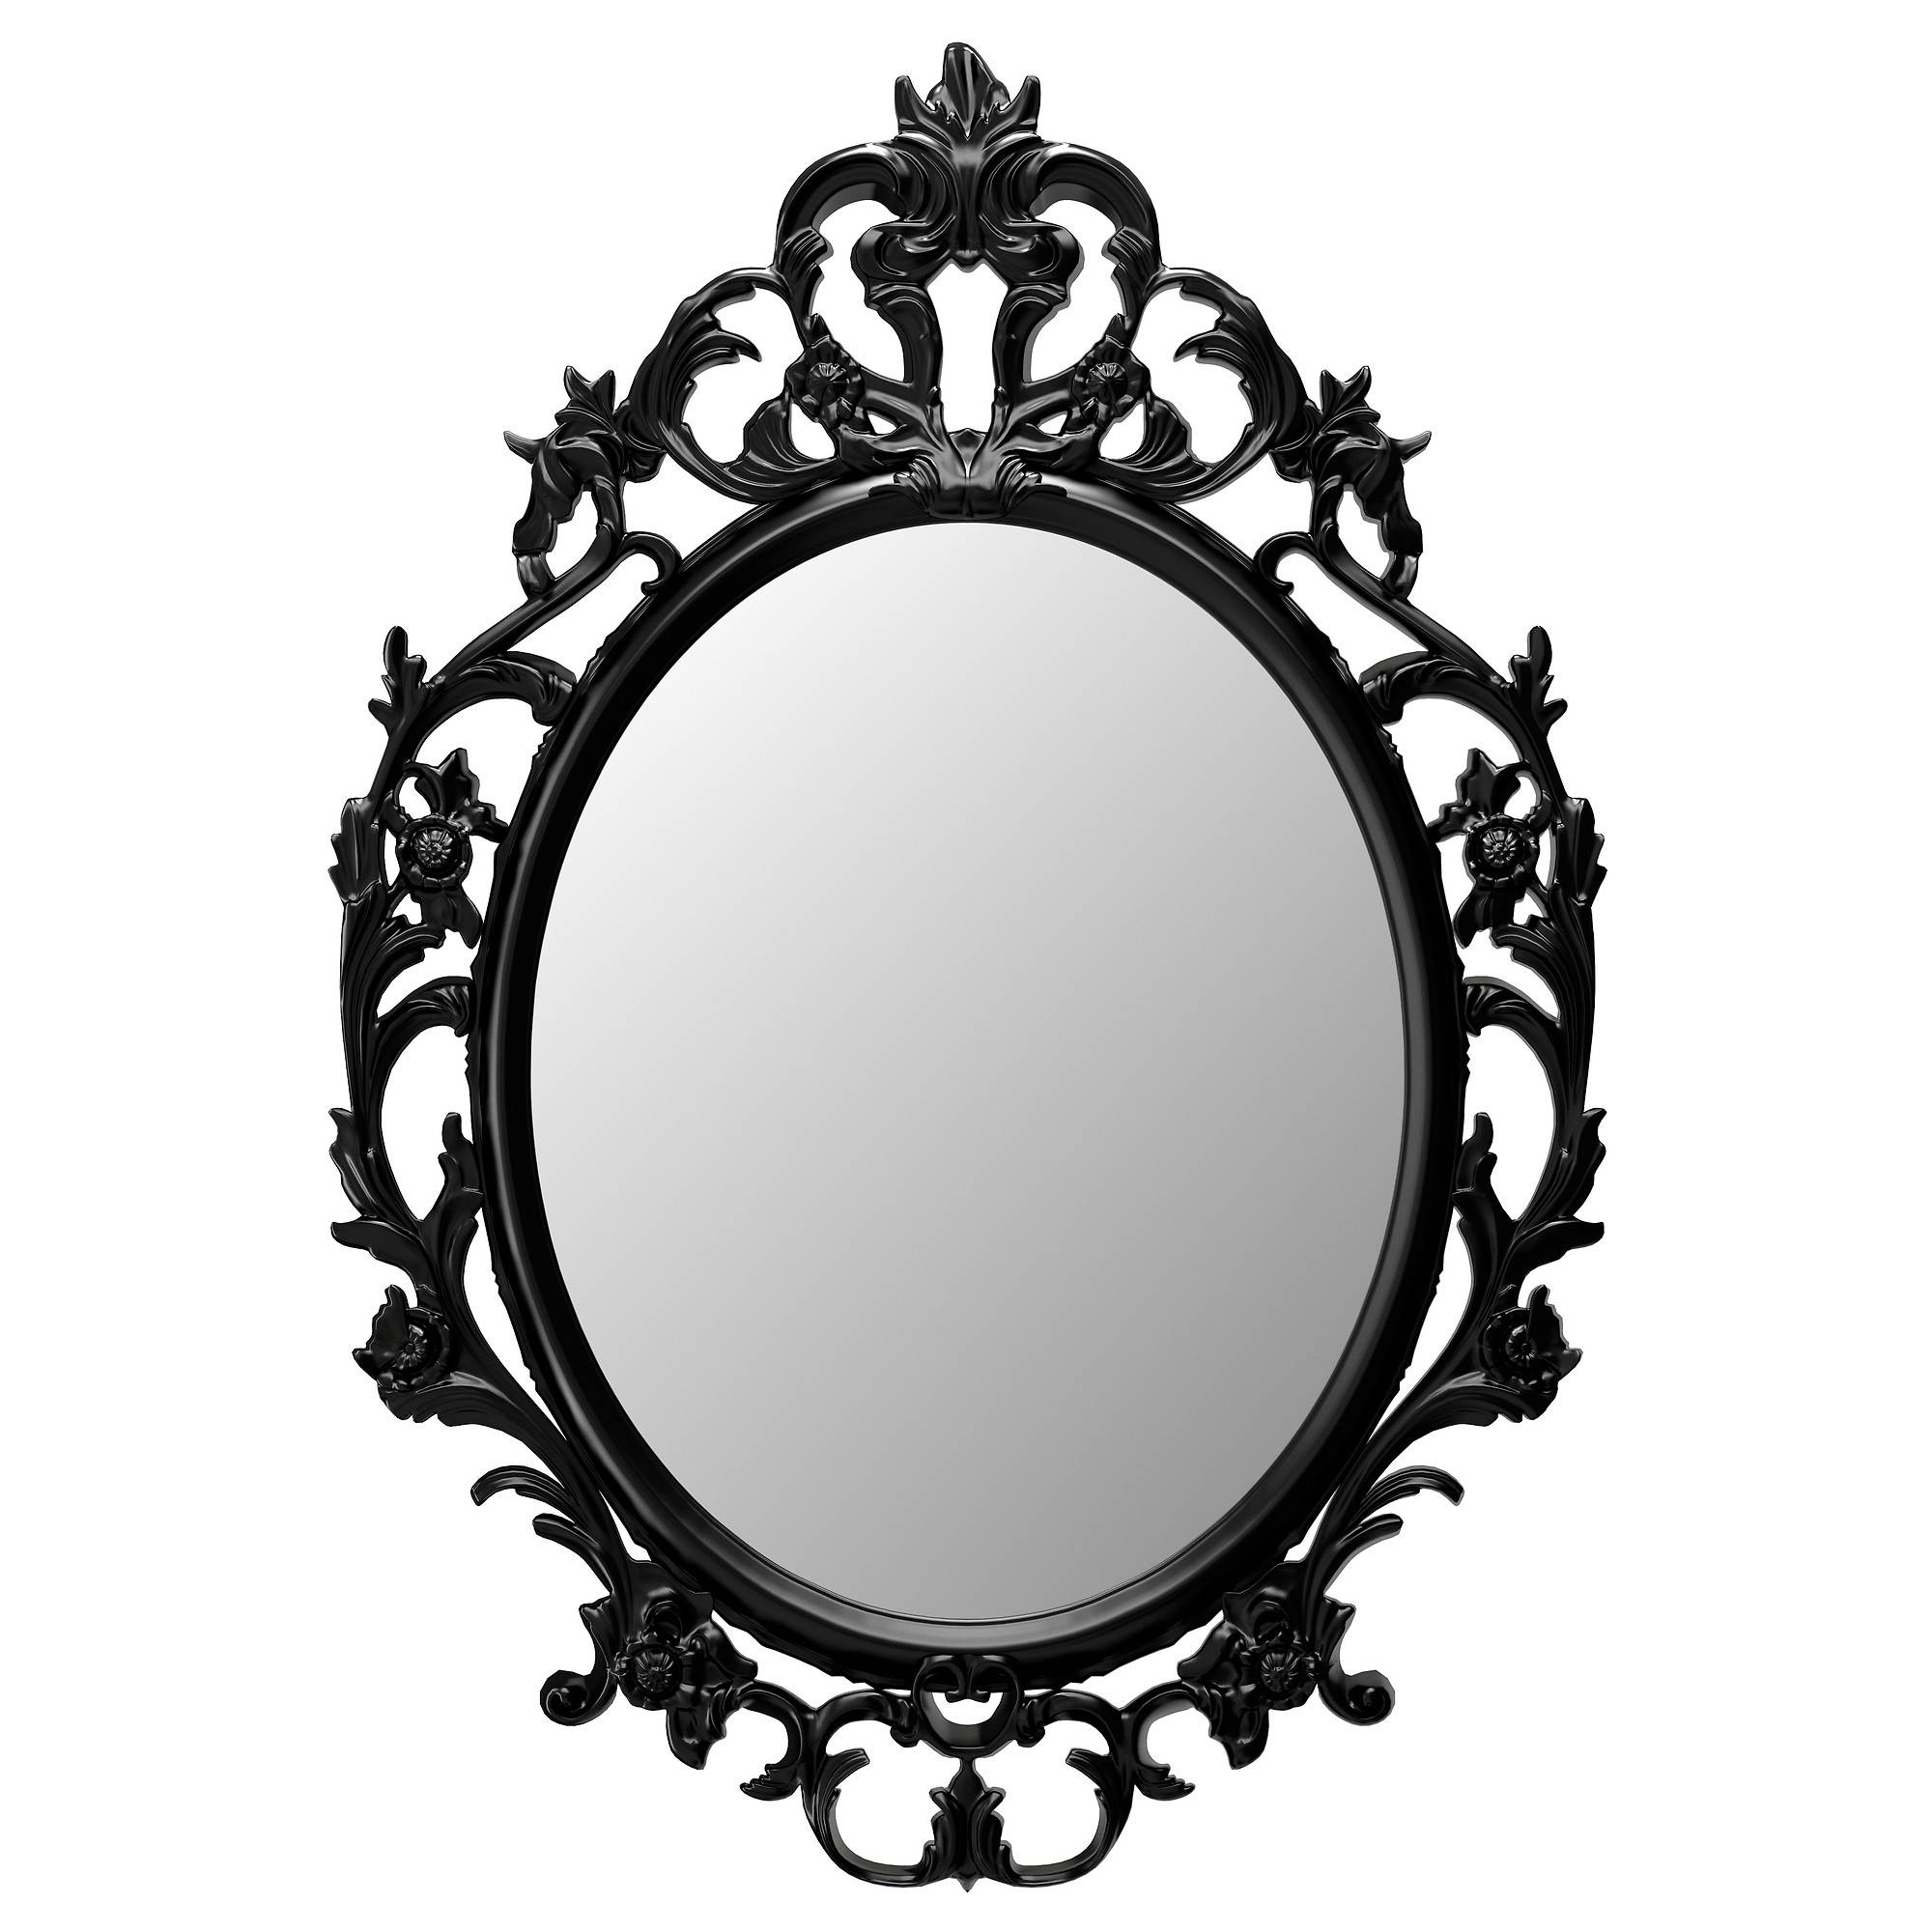 Ung Drill Mirror - Ikea in Ornate Black Mirrors (Image 14 of 15)